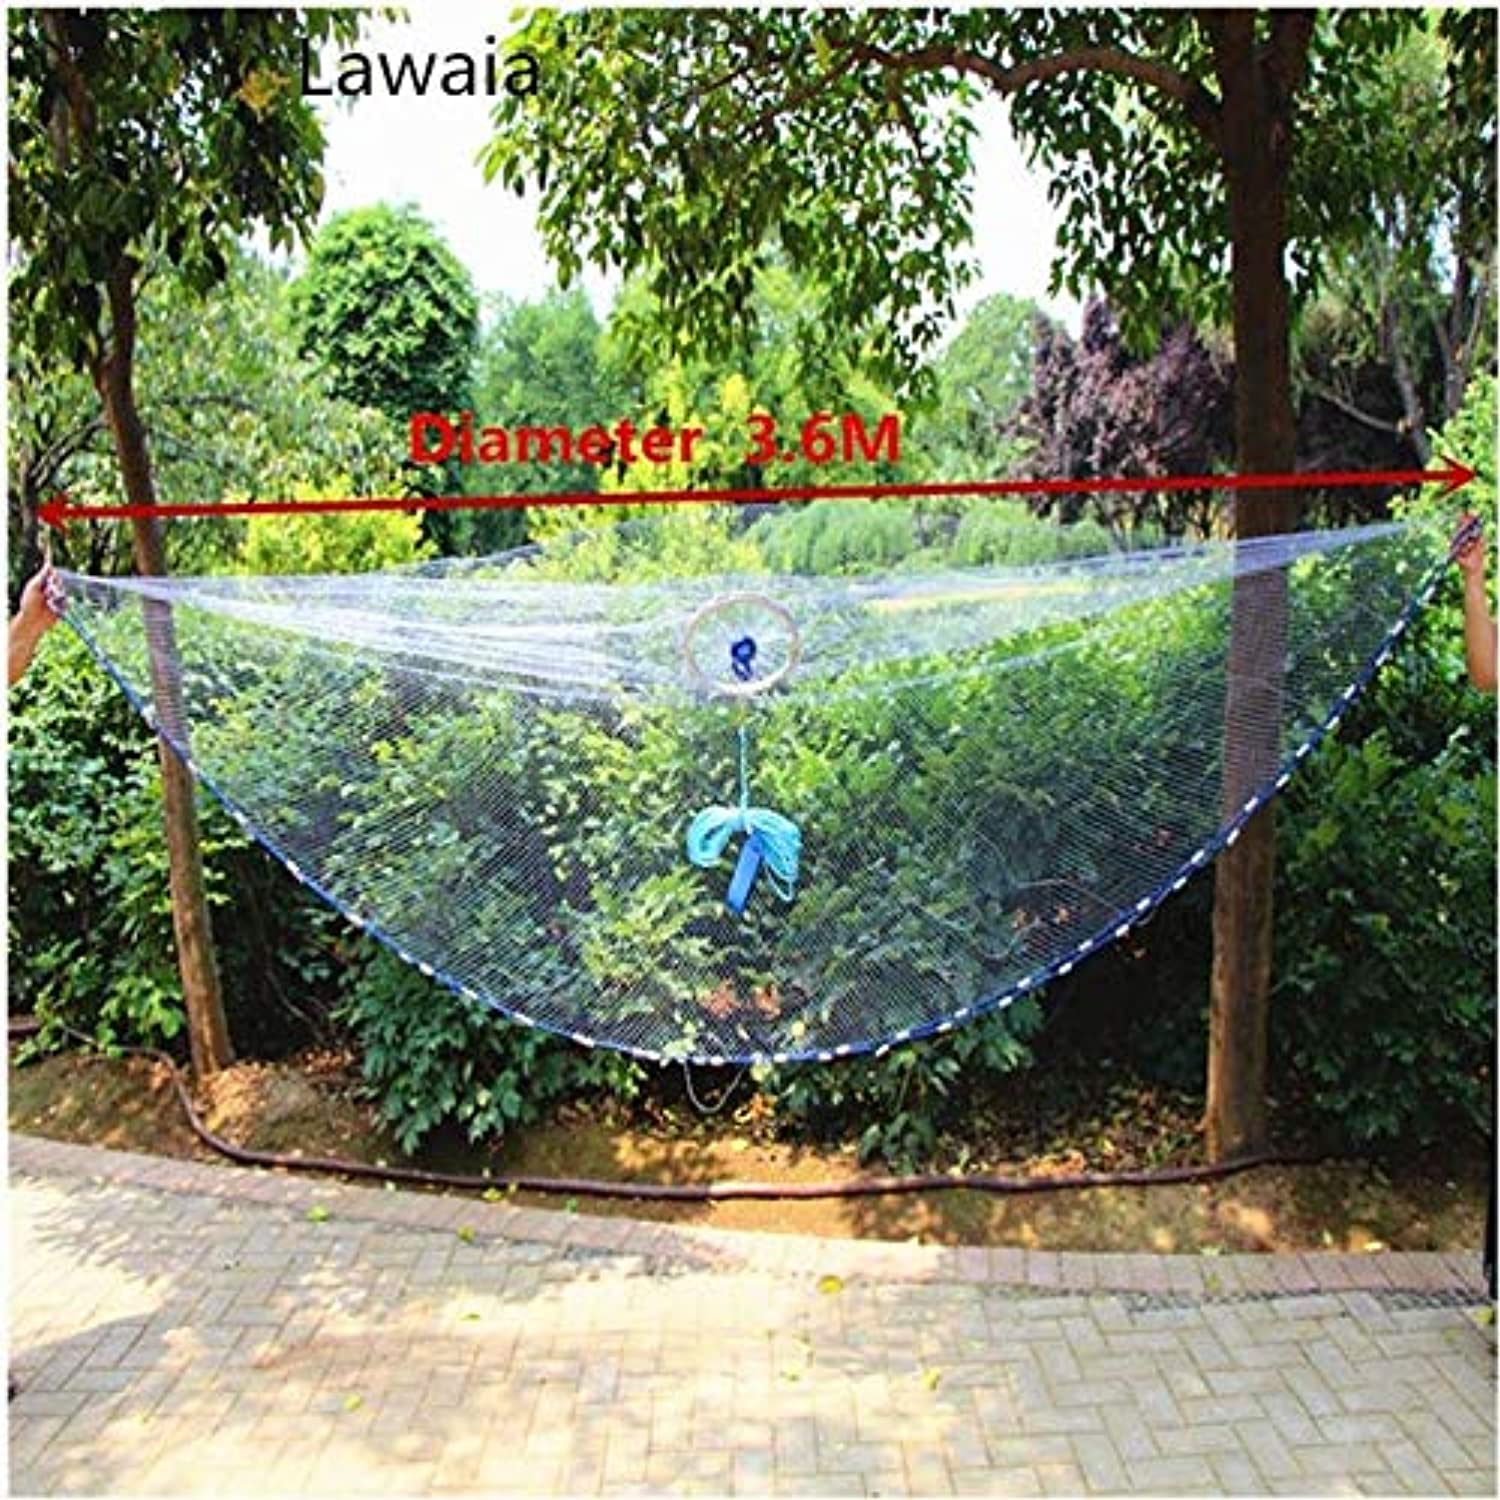 Lawaia cast Net with Ring American Style Cast Net Throwing Tool Fishingnet with Lead Pendant Fishing Network Diameter 2.4m7.2m   Diameter 360cm